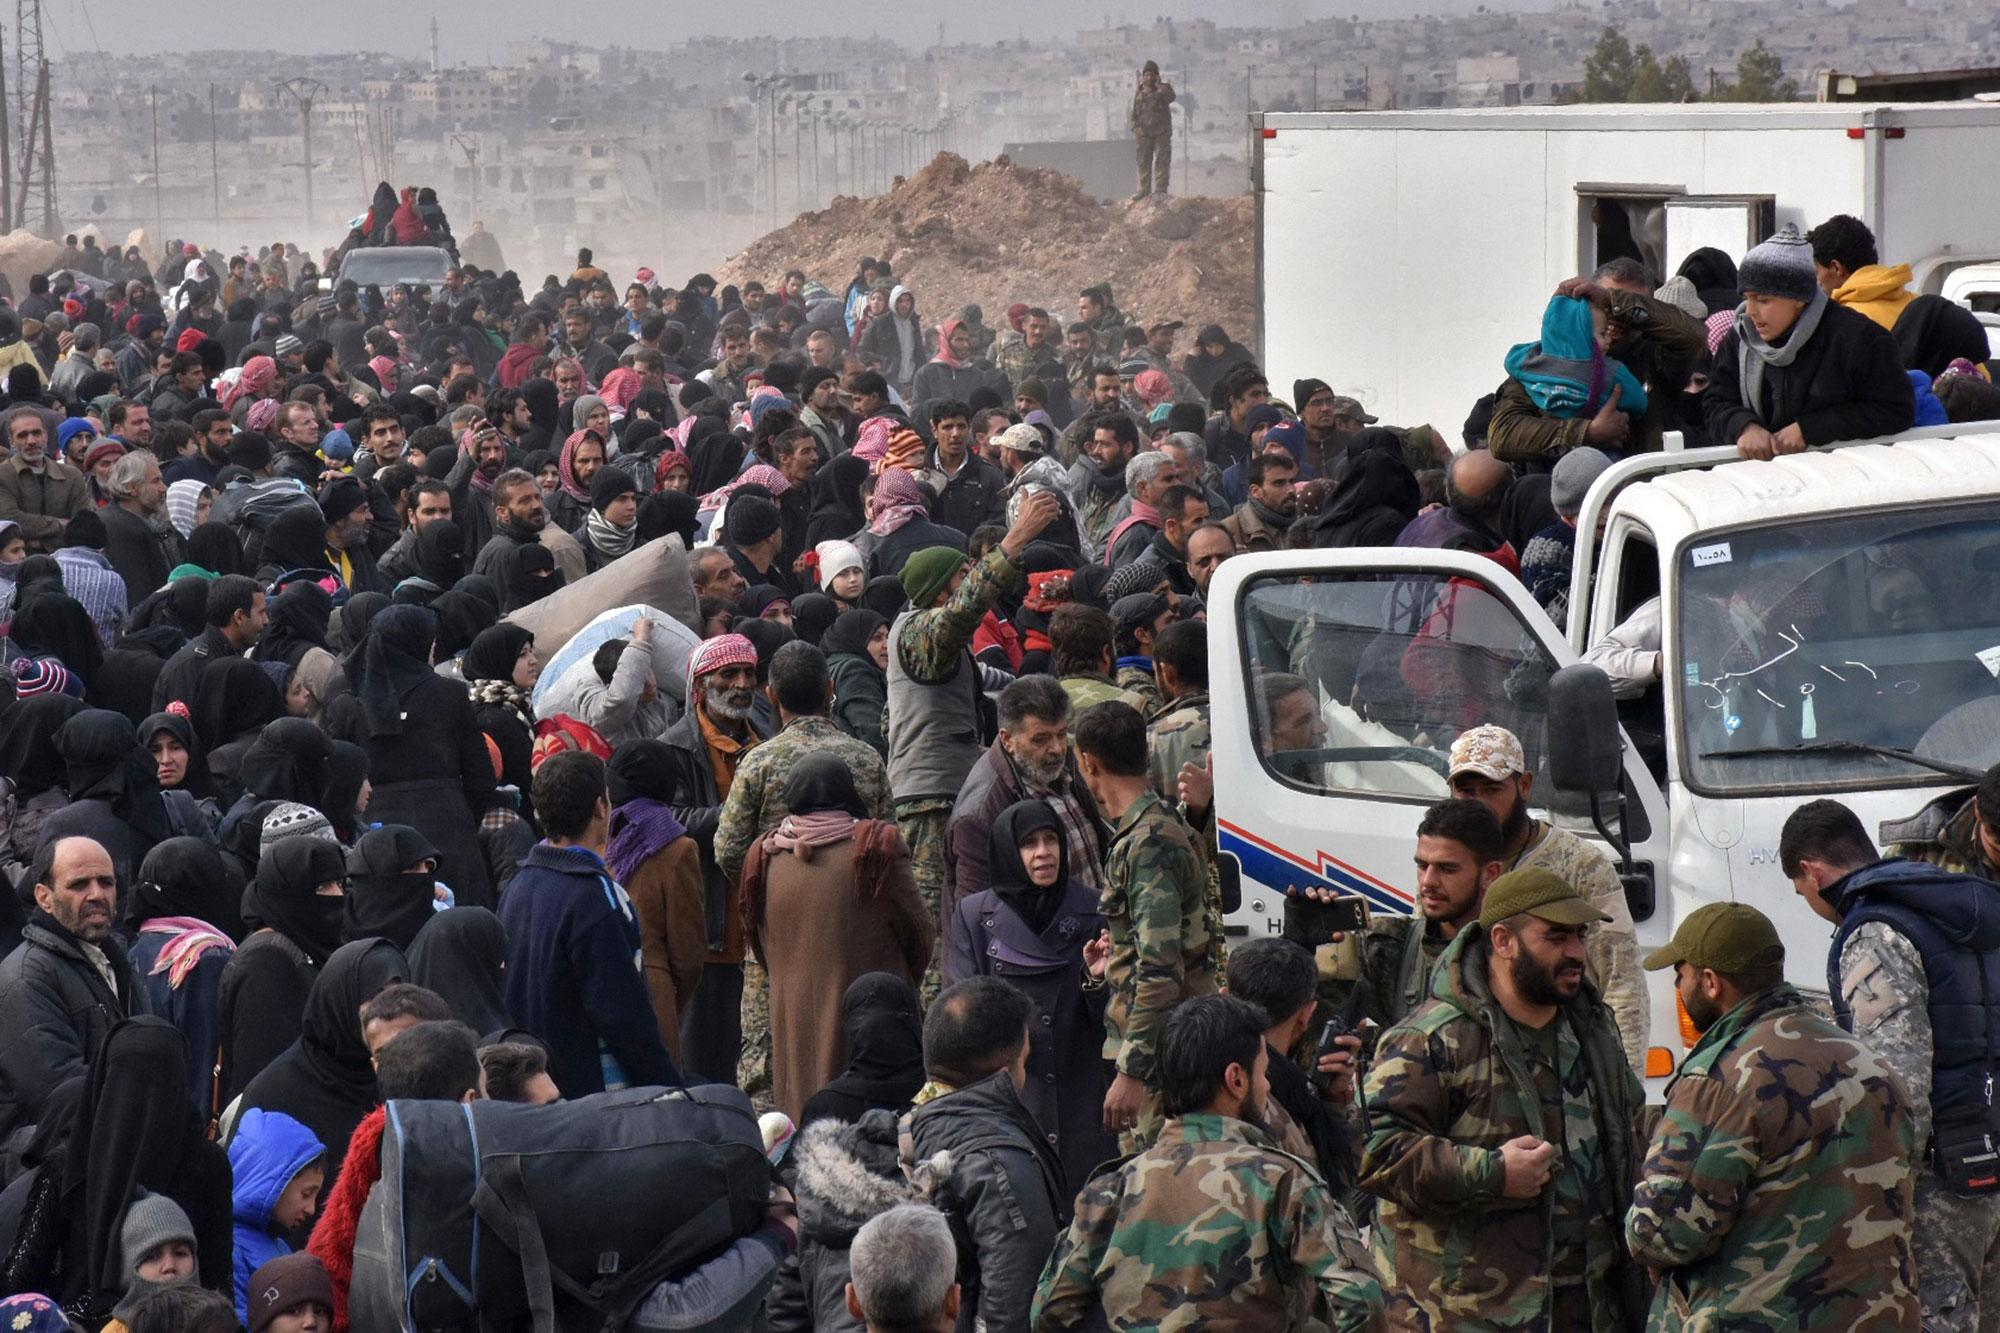 <p>Syrian families, fleeing from various eastern districts of Aleppo, queue to get onto governmental buses on November 29, 2016 in the government-held eastern neighbourhood of Jabal Badro, before heading to government-controlled western Aleppo, as the Syrian government offensive to recapture rebel-held Aleppo has prompted an exodus of civilians. The Syrian government offensive to recapture rebel-held Aleppo sparked international alarm, with the UN saying nearly 16,000 people had fled the assault and more could follow. The fighting has prompted an exodus of terrified civilians, many fleeing empty-handed into remaining rebel-held territory, or crossing into government-controlled western Aleppo or Kurdish districts. (George Ourfalian/AFP/Getty Images) </p>